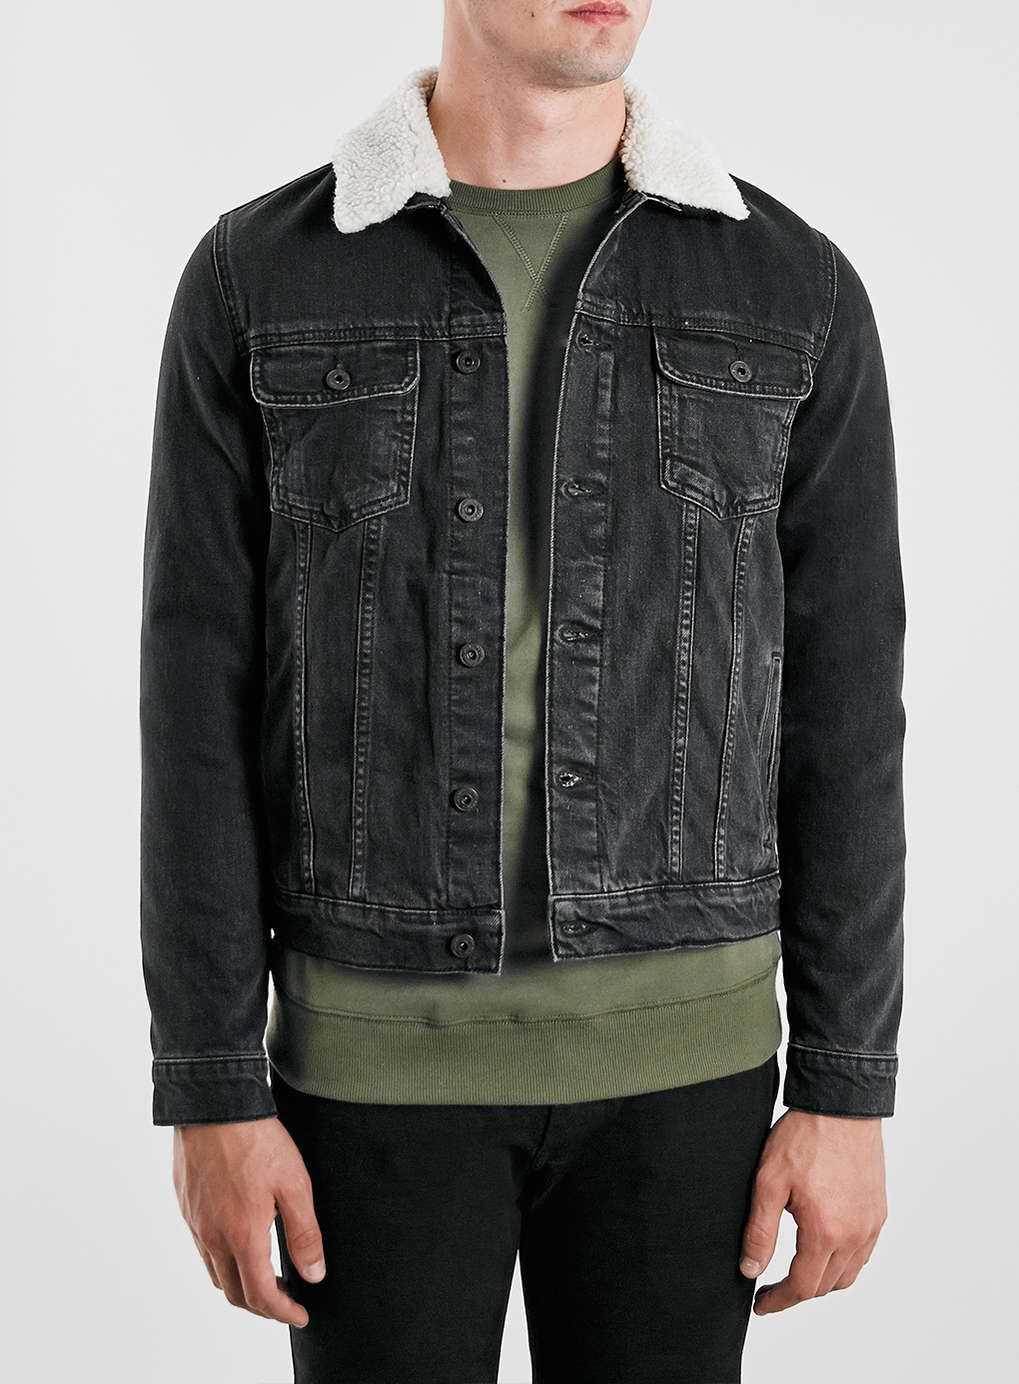 fb8cffeeea Washed Black Borg Denim Jacket - Topman